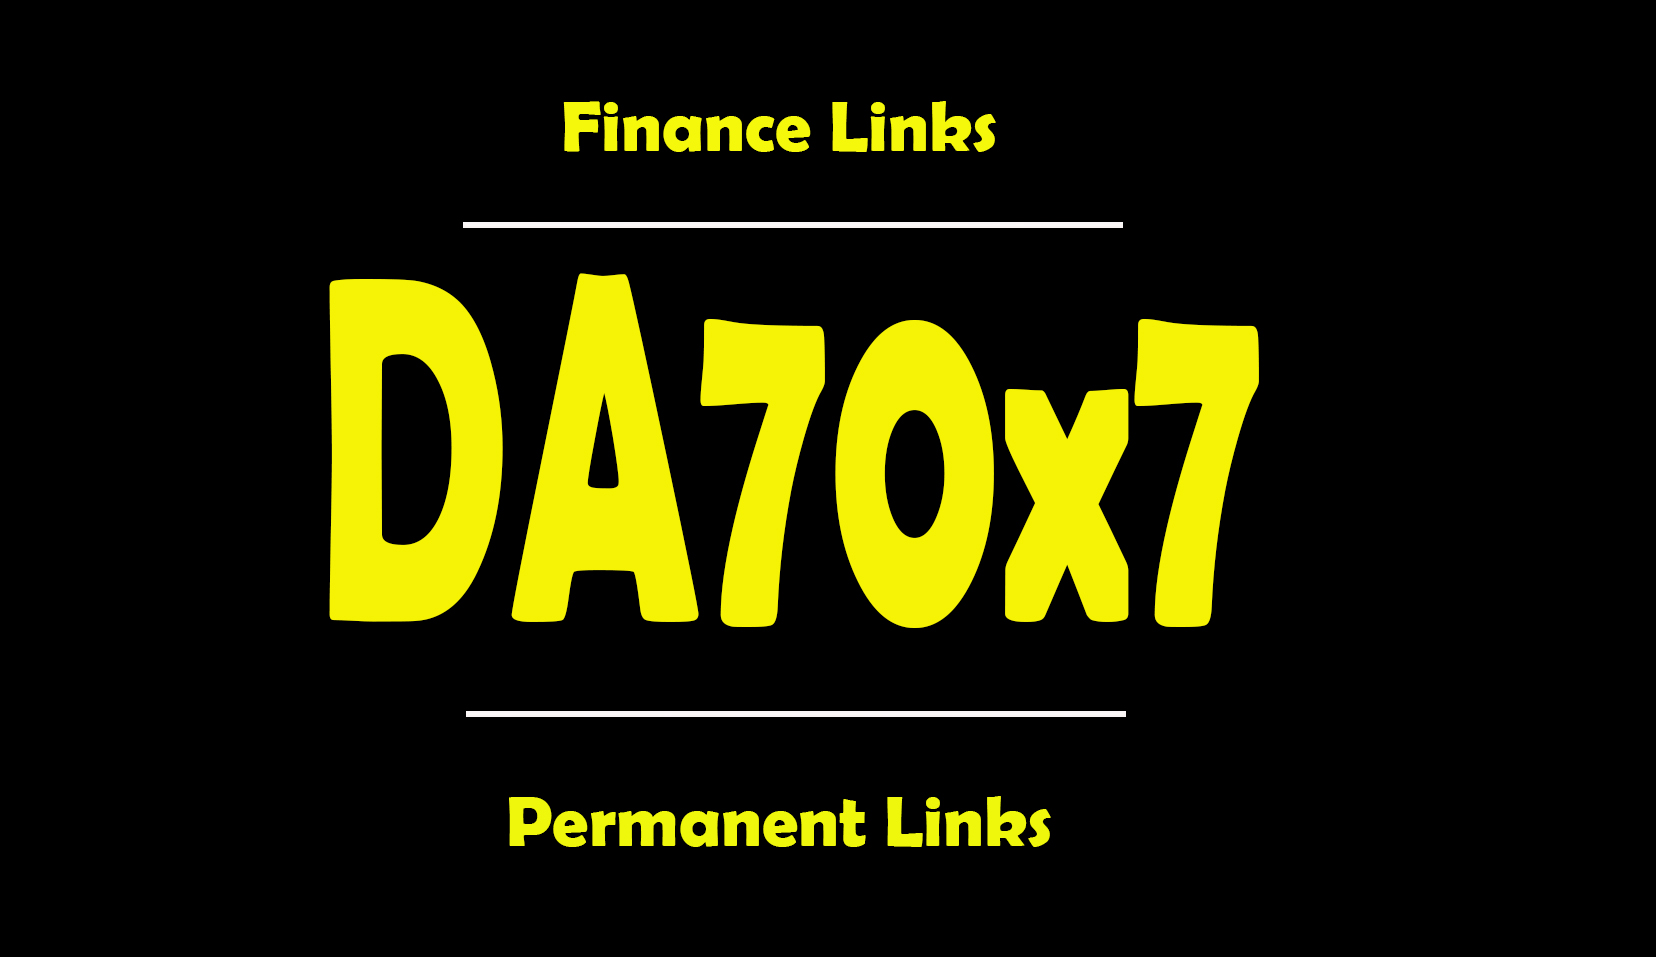 I will give link Da70x7 finance site blogroll permanent